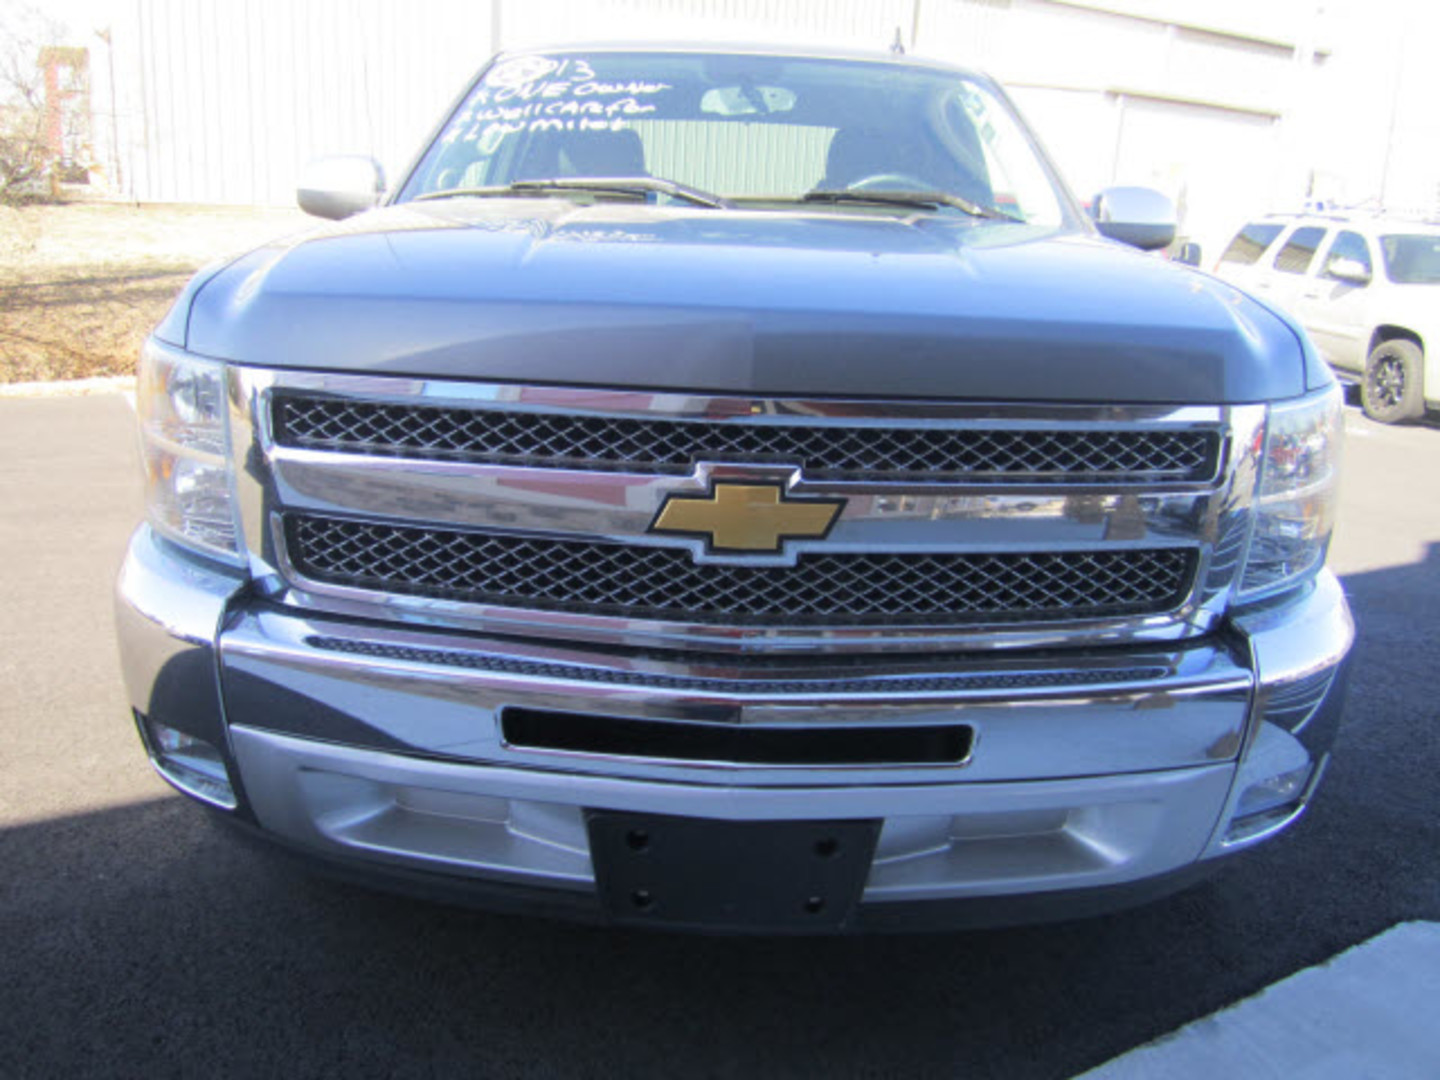 2013 chevrolet silverado 1500 lt fort smith ar breeden auto sales in. Cars Review. Best American Auto & Cars Review